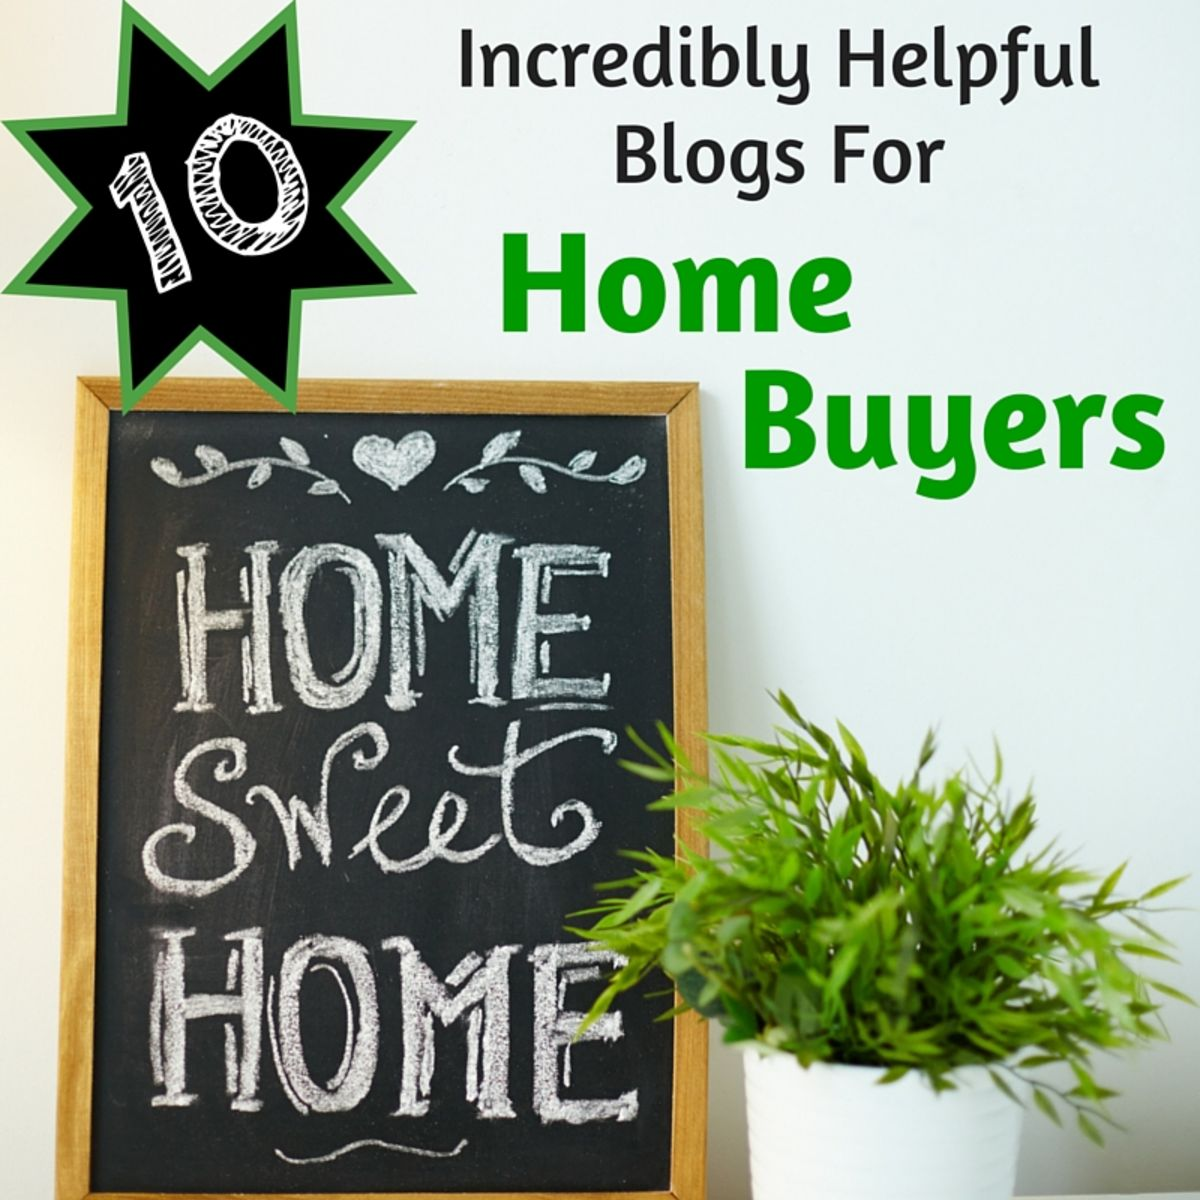 Headline for 10 Incredibly Helpful Blogs For Home Buyers